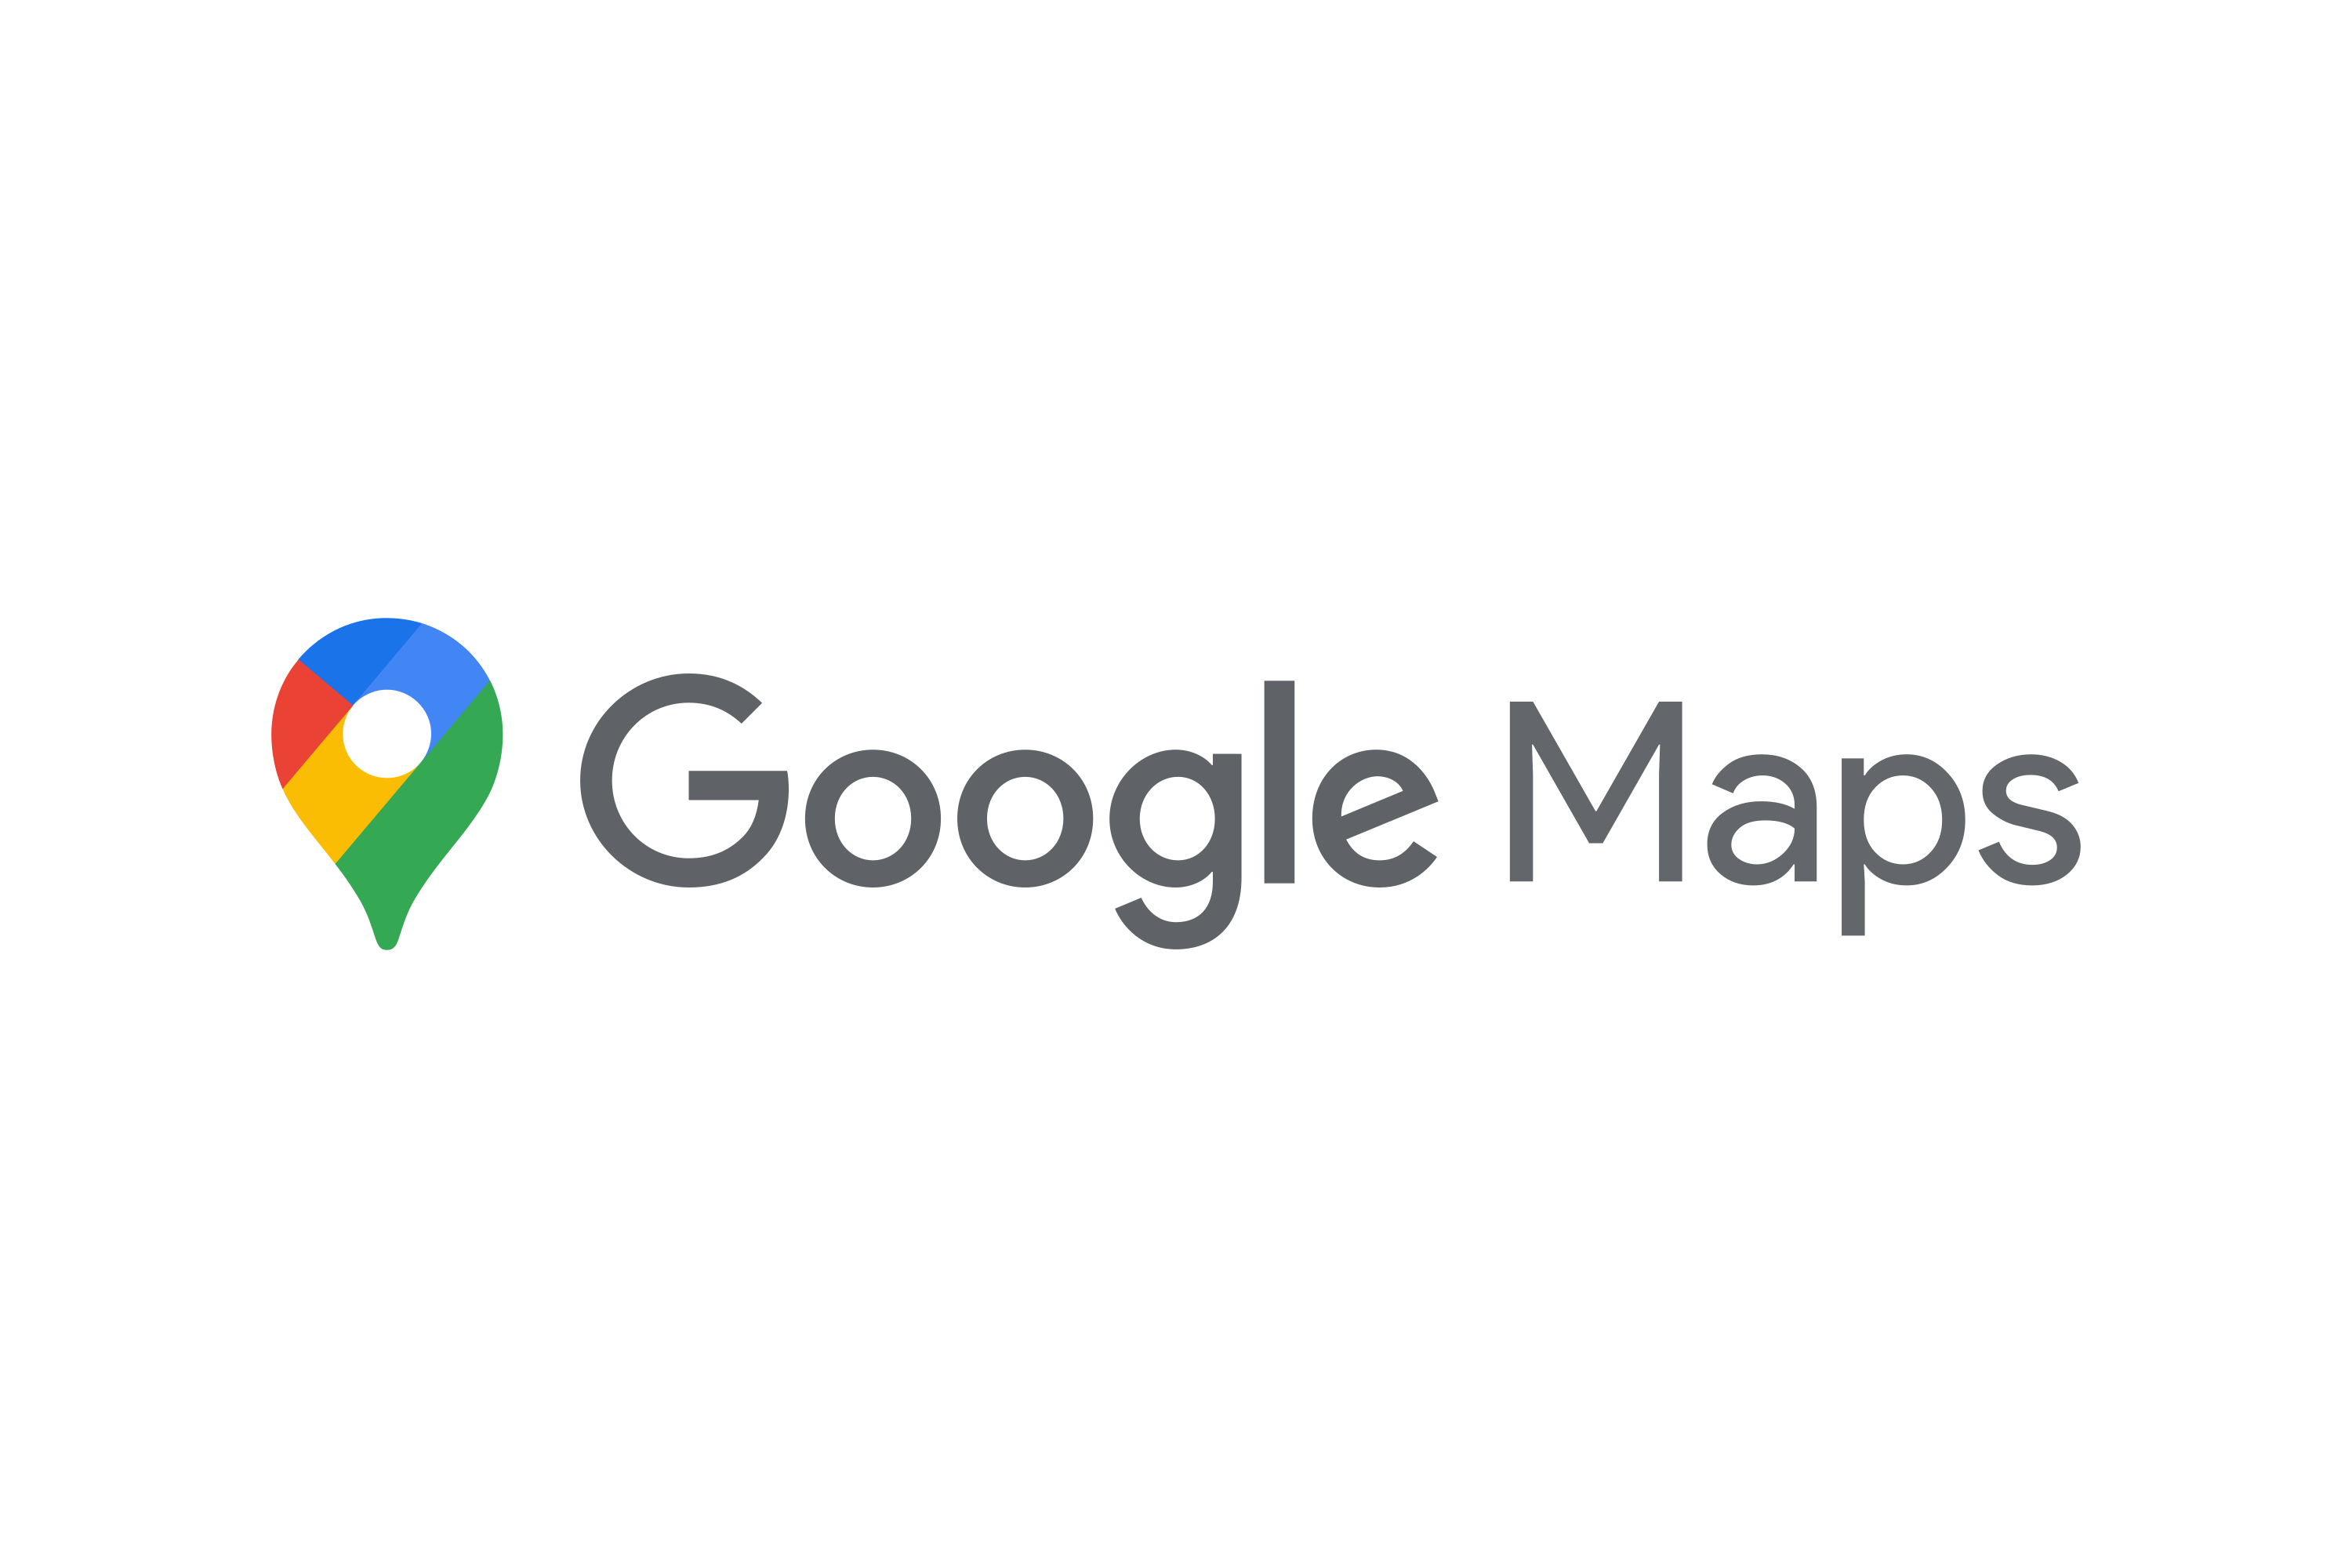 Download Google Maps Logo in SVG Vector or PNG File Format